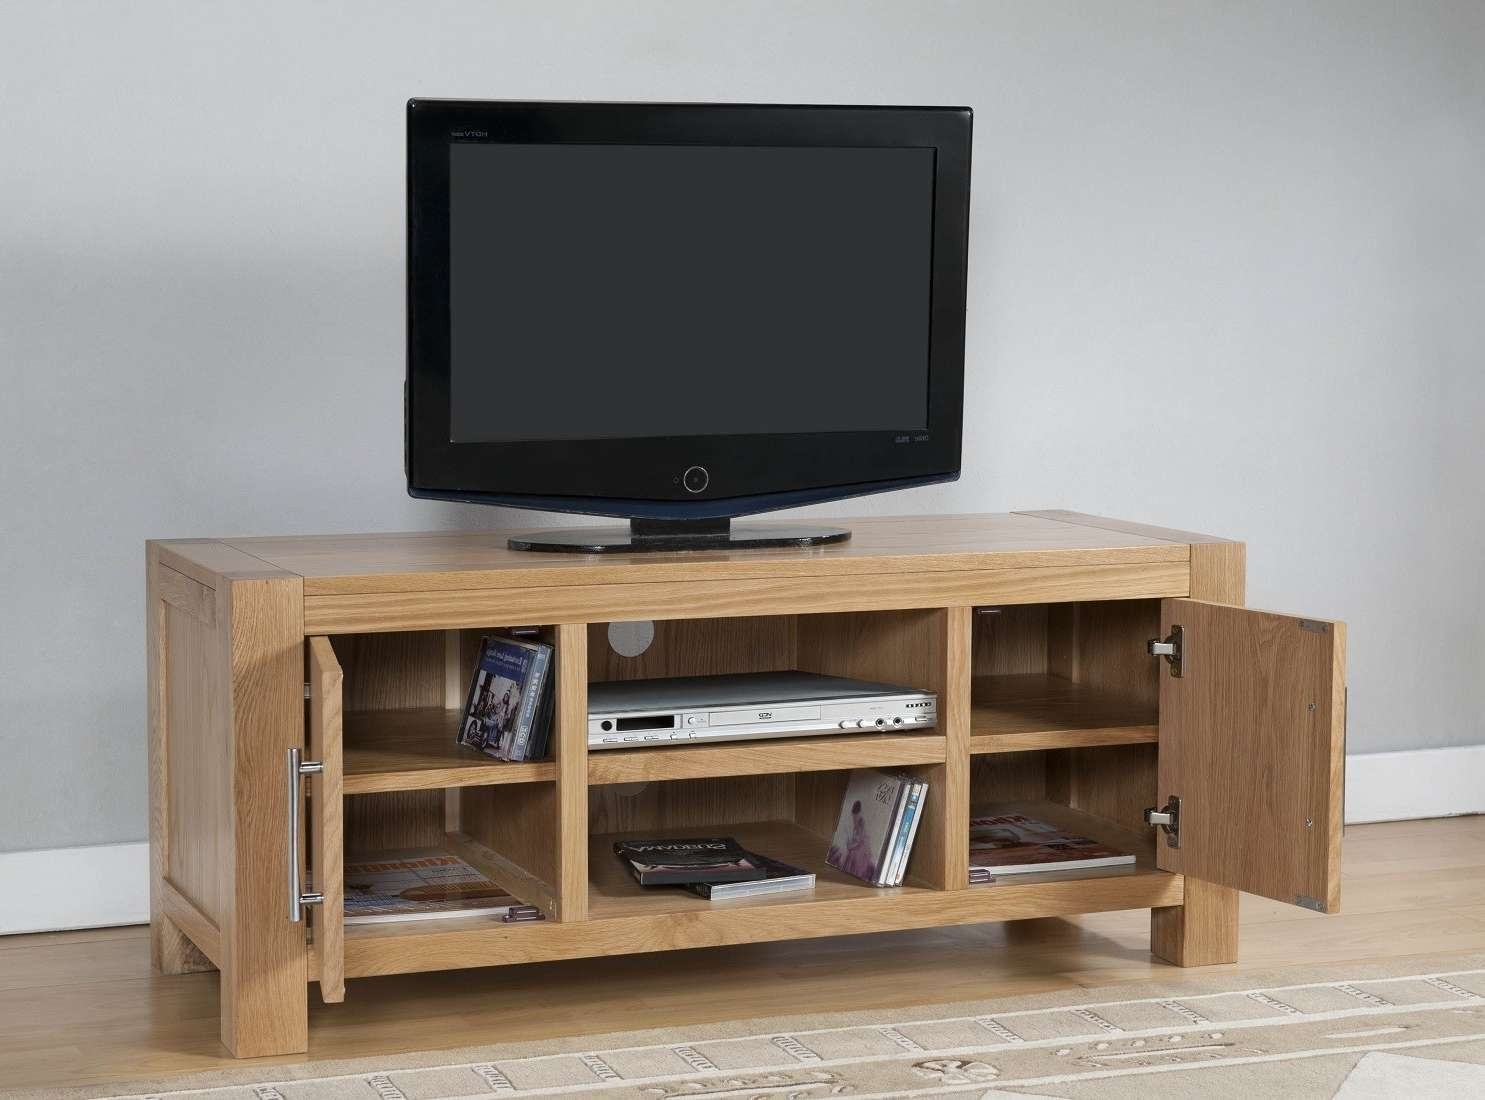 Aylesbury Contemporary Light Oak Large Tv Unit | Oak Furniture Uk Pertaining To Contemporary Oak Tv Cabinets (View 2 of 20)